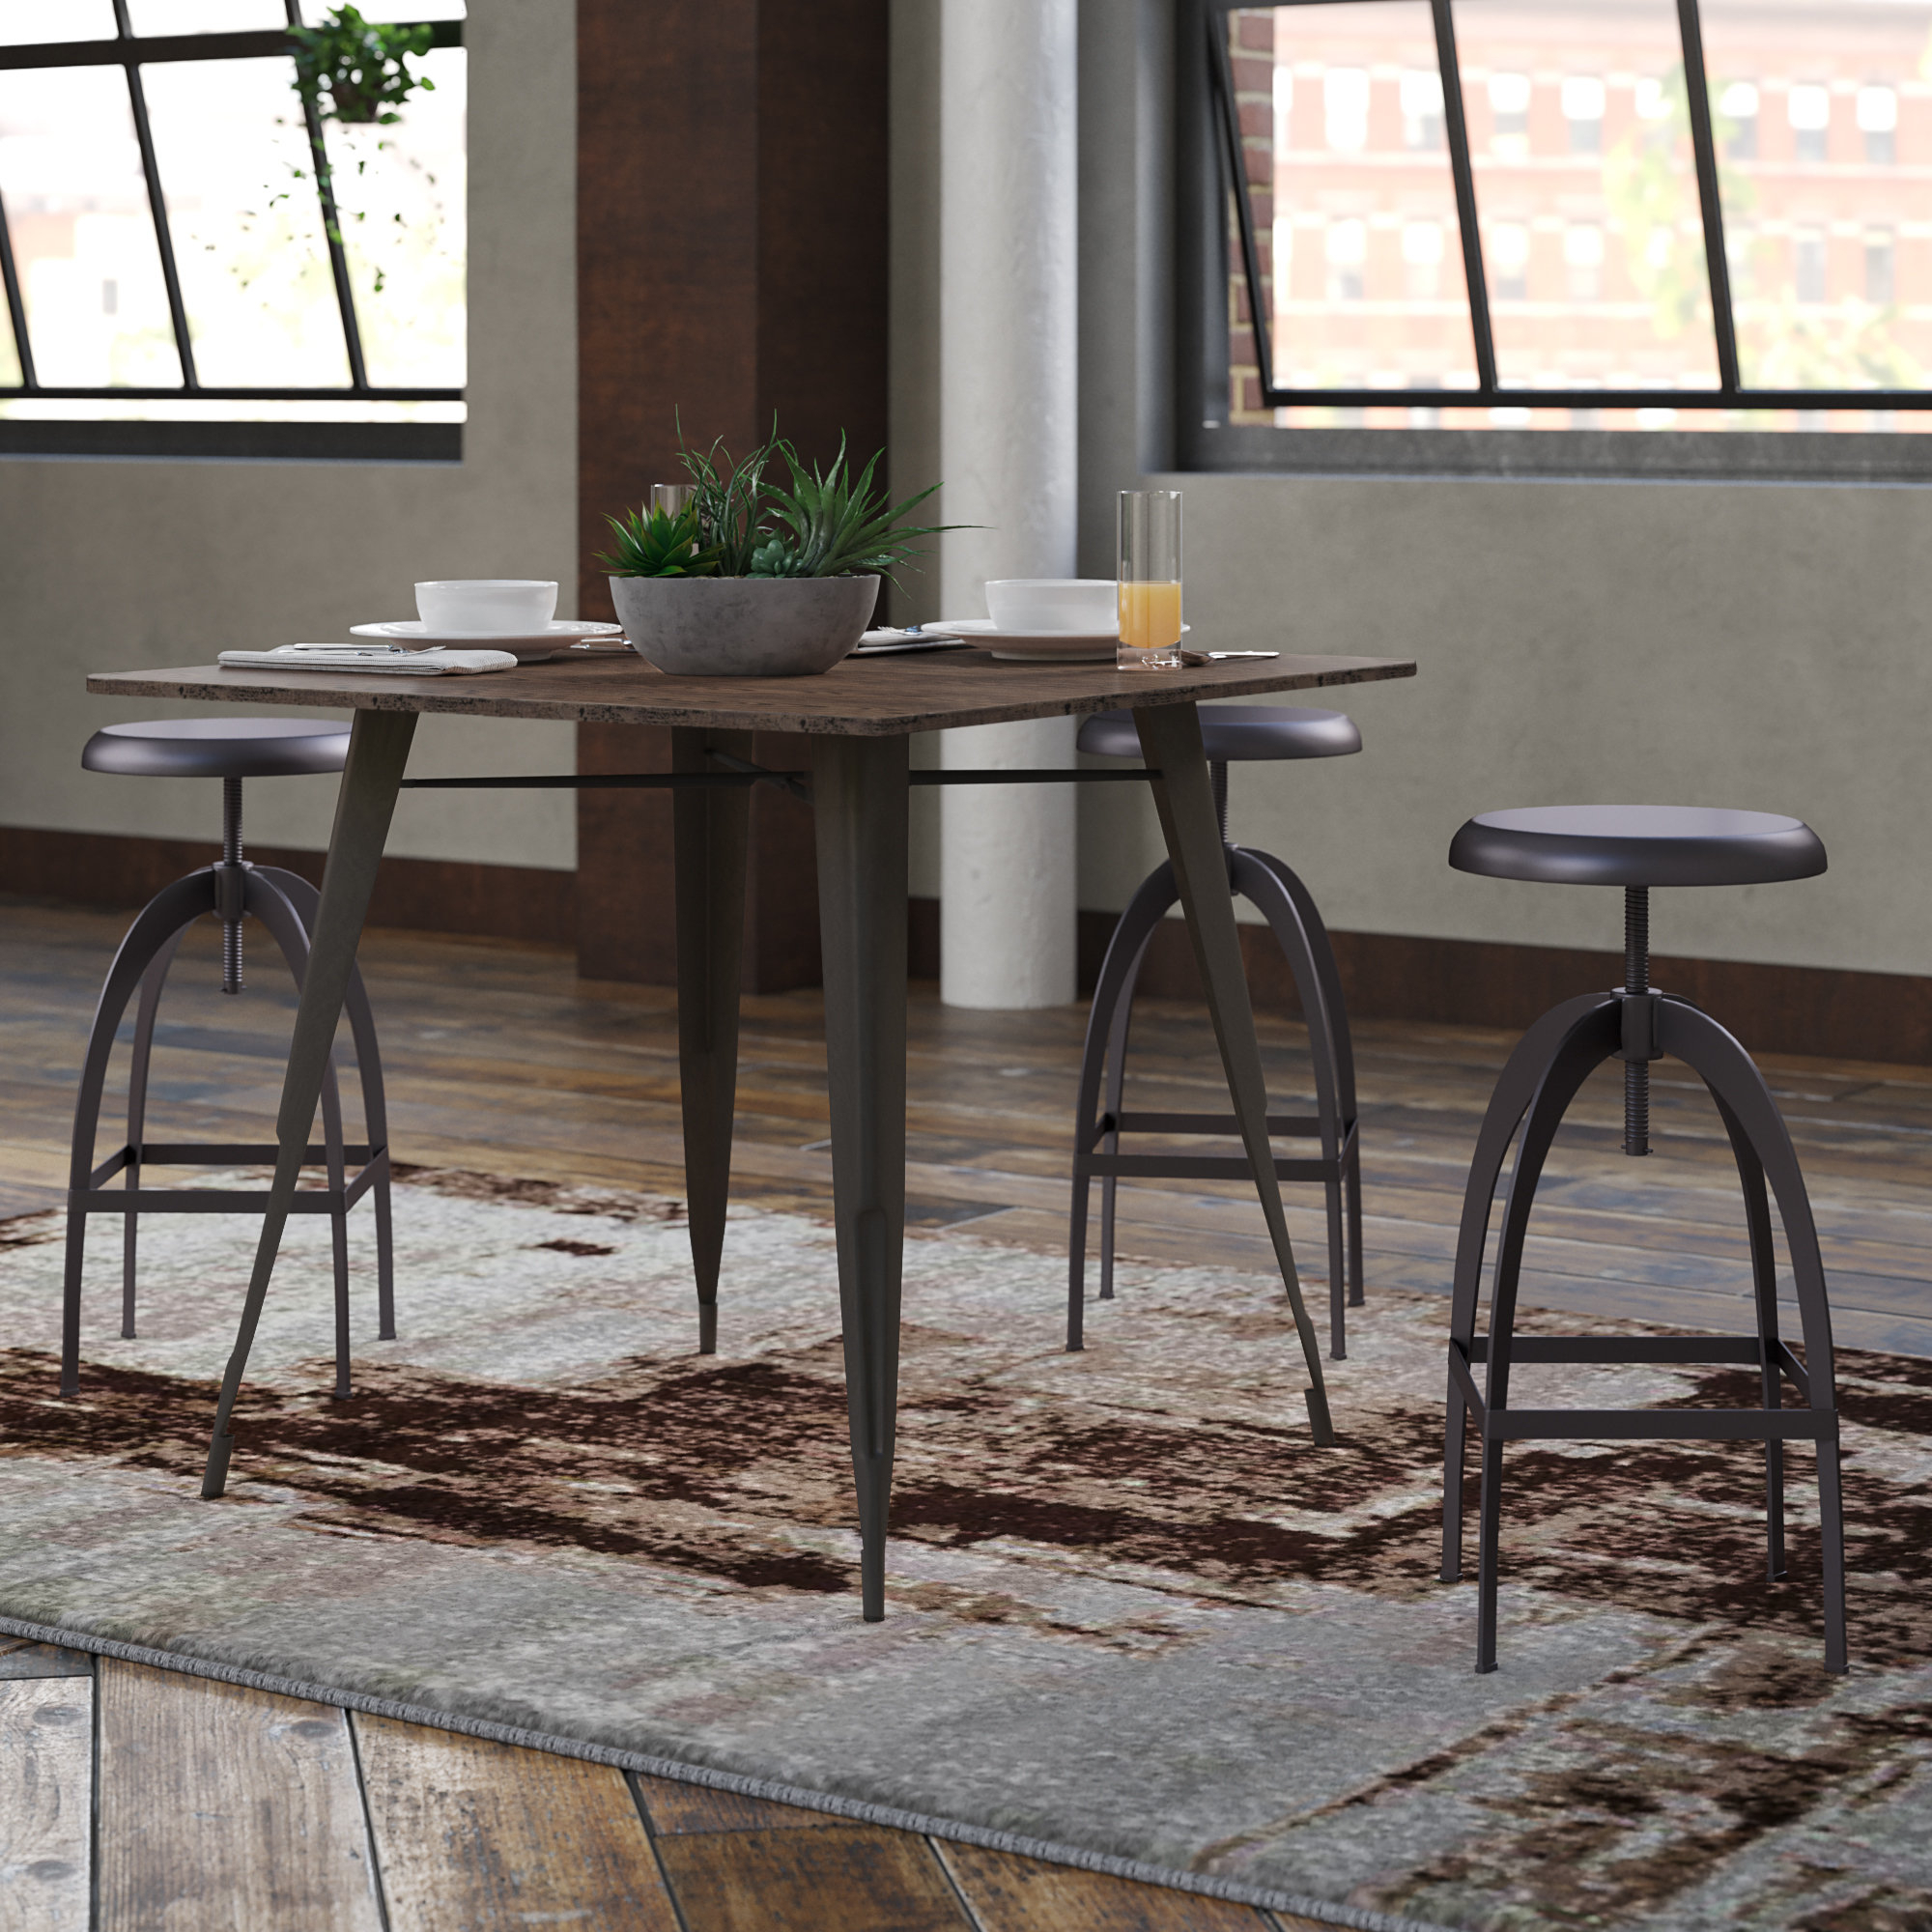 Wayfair For Weatherholt Dining Tables (View 17 of 25)